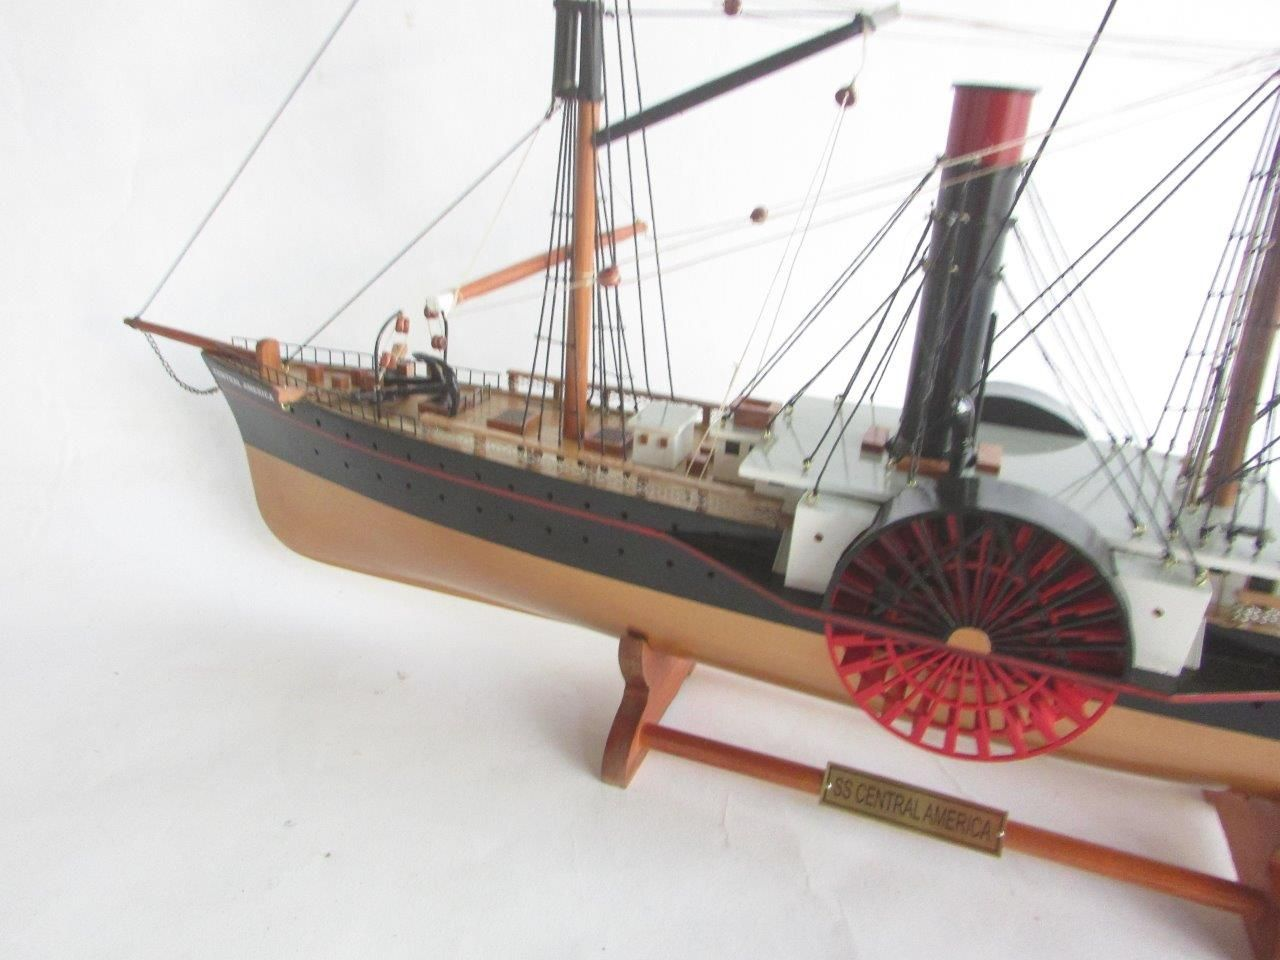 SS Central America Wooden Model Ship - GN (TS0109P)